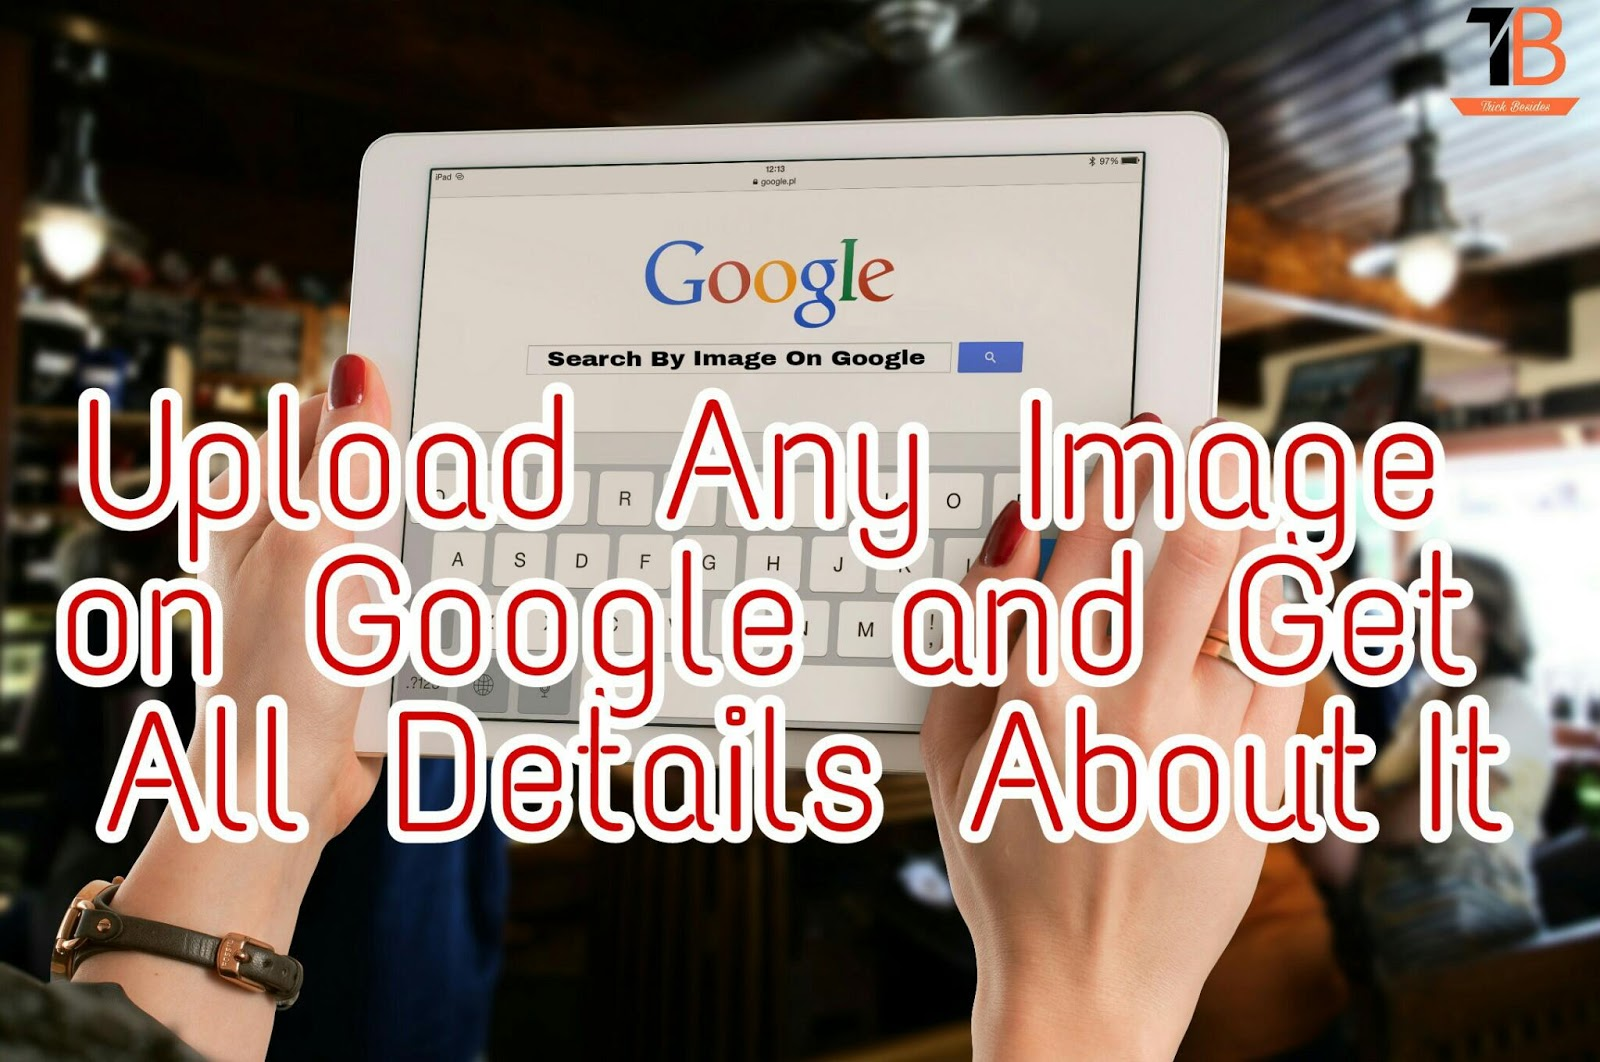 Upload Any Image on Google and Get All Details About Image (Official)